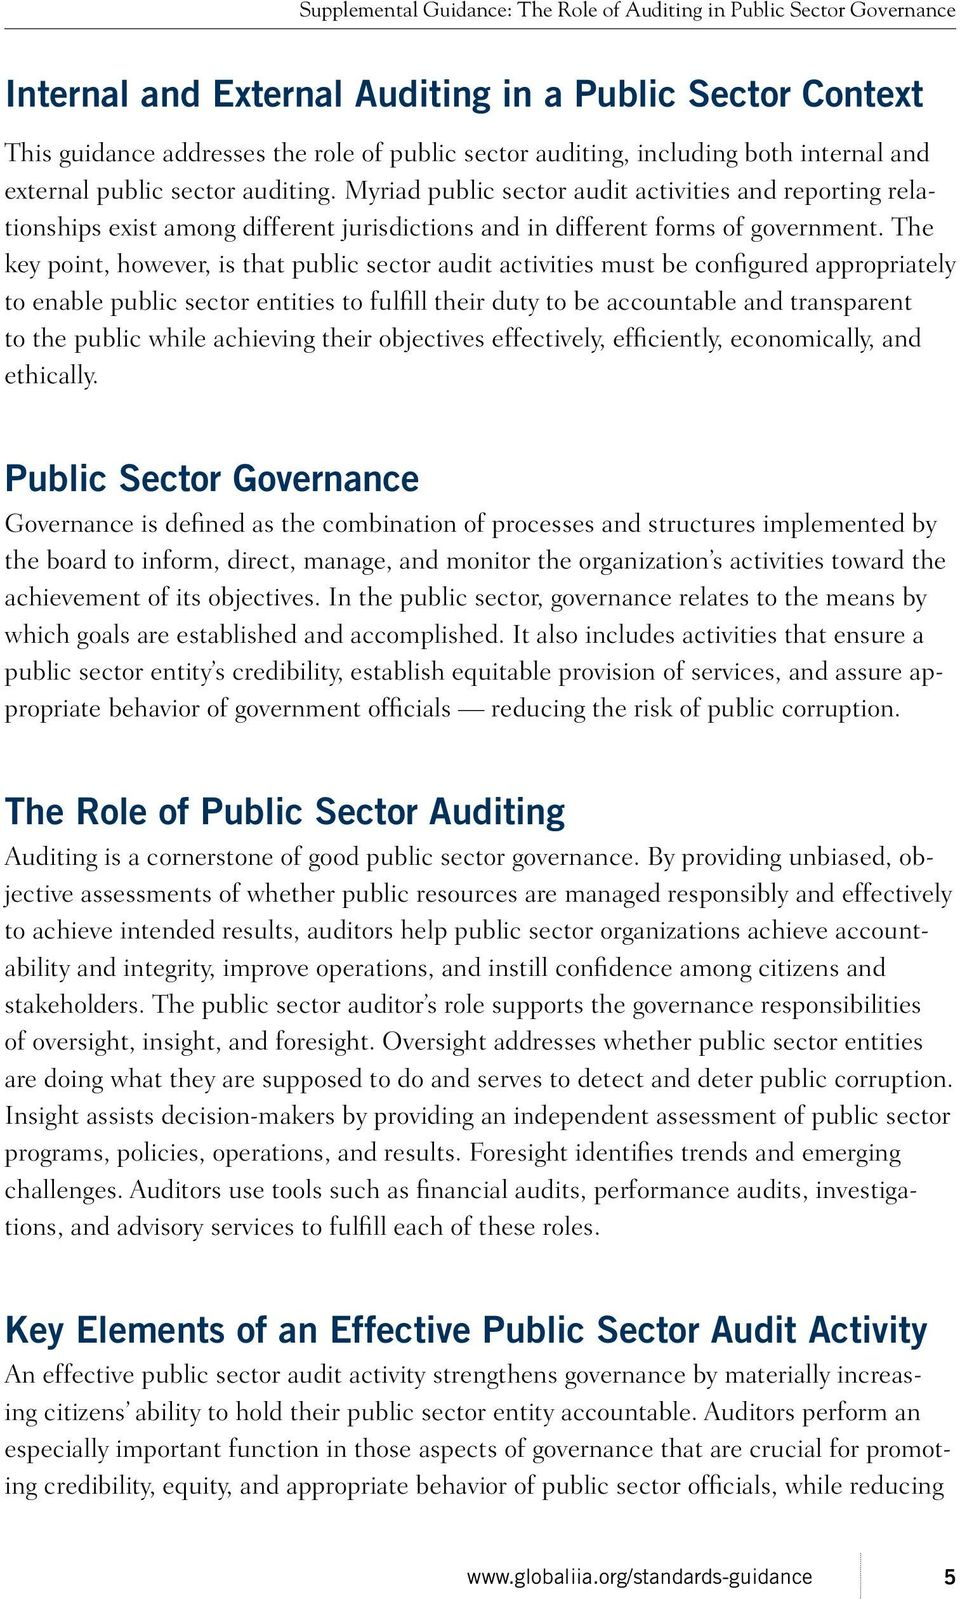 The key point, however, is that public sector audit activities must be configured appropriately to enable public sector entities to fulfill their duty to be accountable and transparent to the public